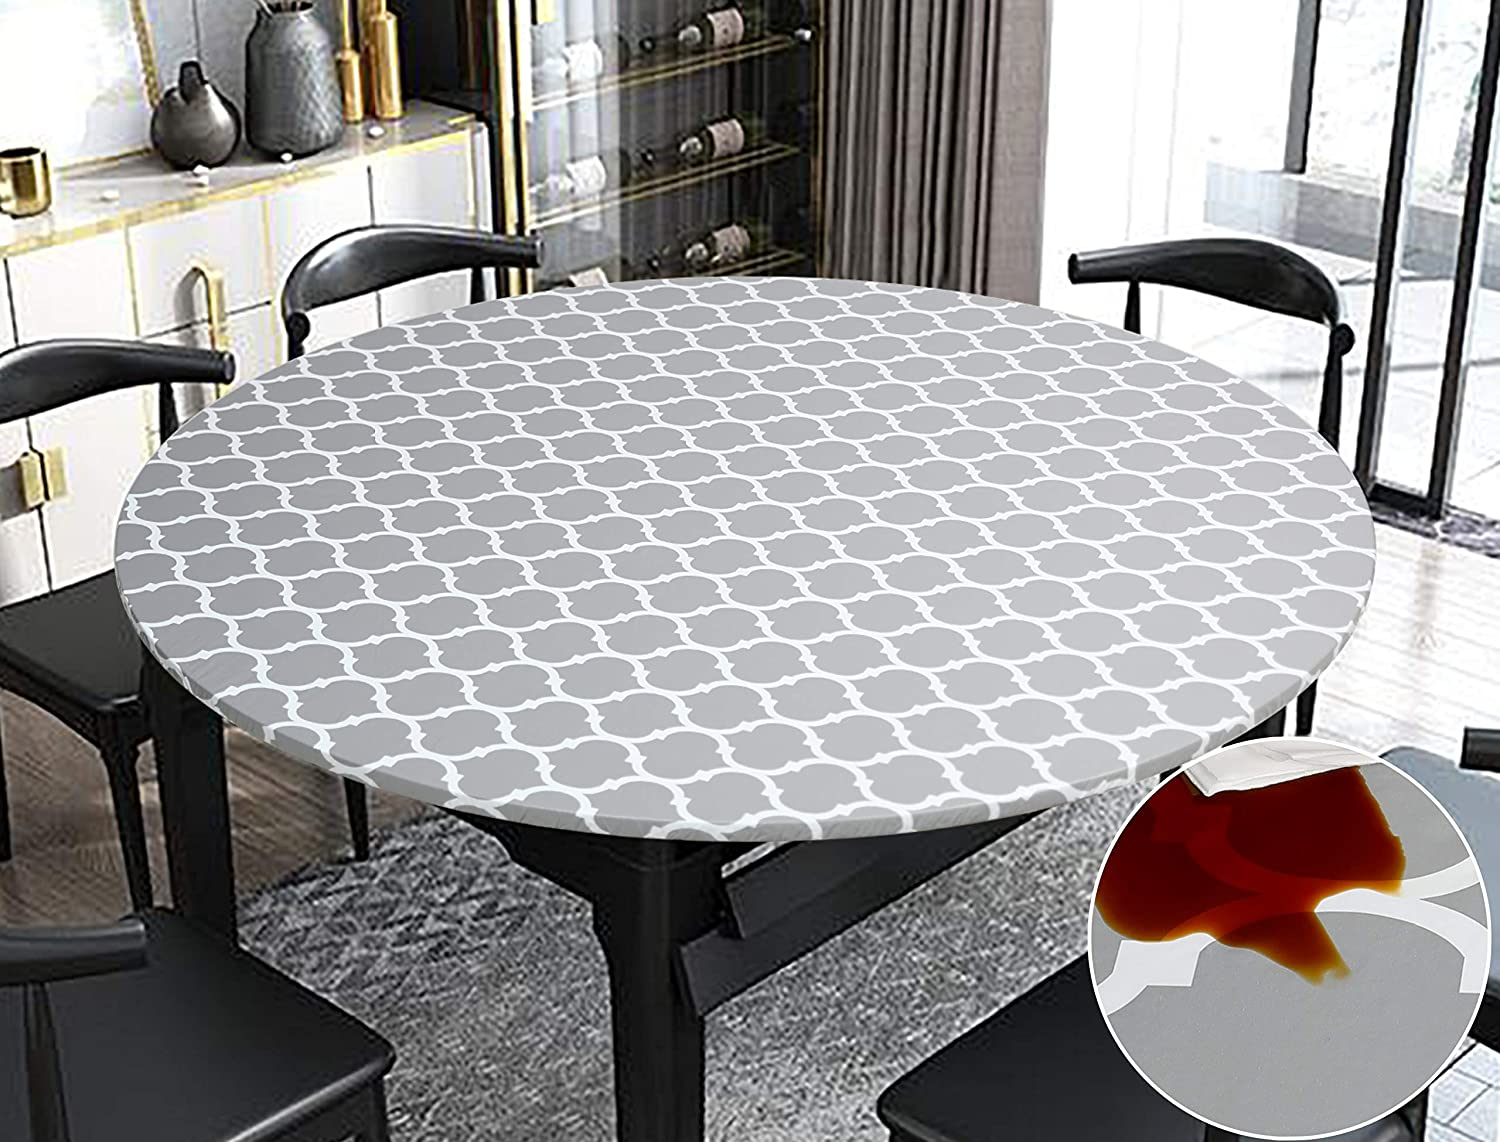 Rally Home Goods Indoor Outdoor Patio Round Fitted Vinyl Tablecloth, Flannel Backing, Elastic Edge, Waterproof Wipeable Plastic Cover, Gray Moroccan Trellis Pattern for 5-Seat Table 36-44'' Diameter